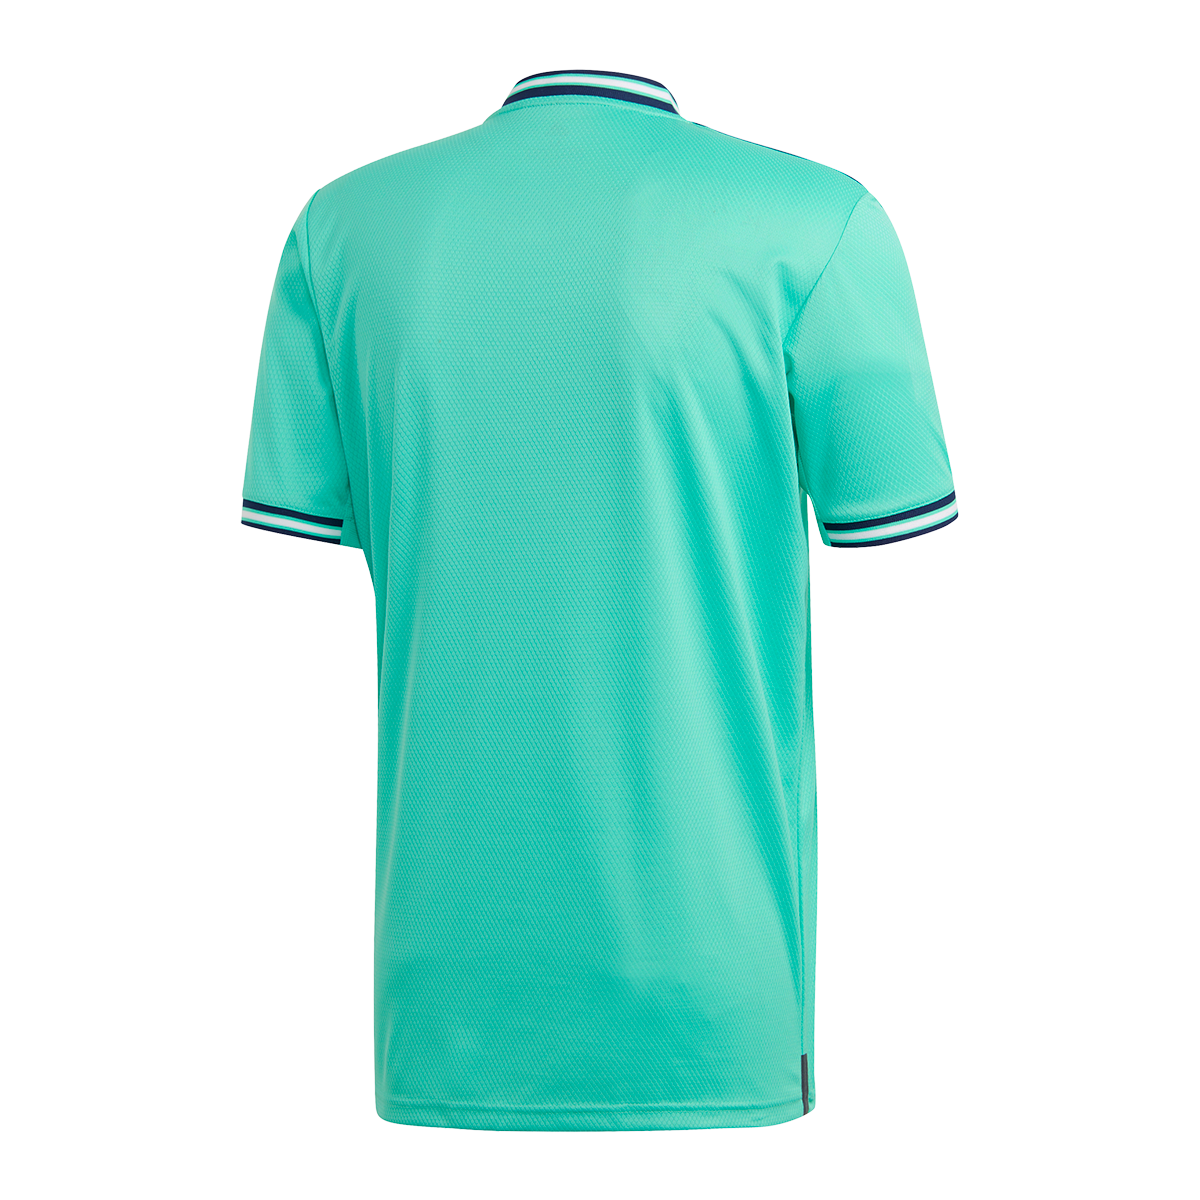 adidas Real Madrid 2017-2018 Third Soccer Jersey Brand New Teal Green